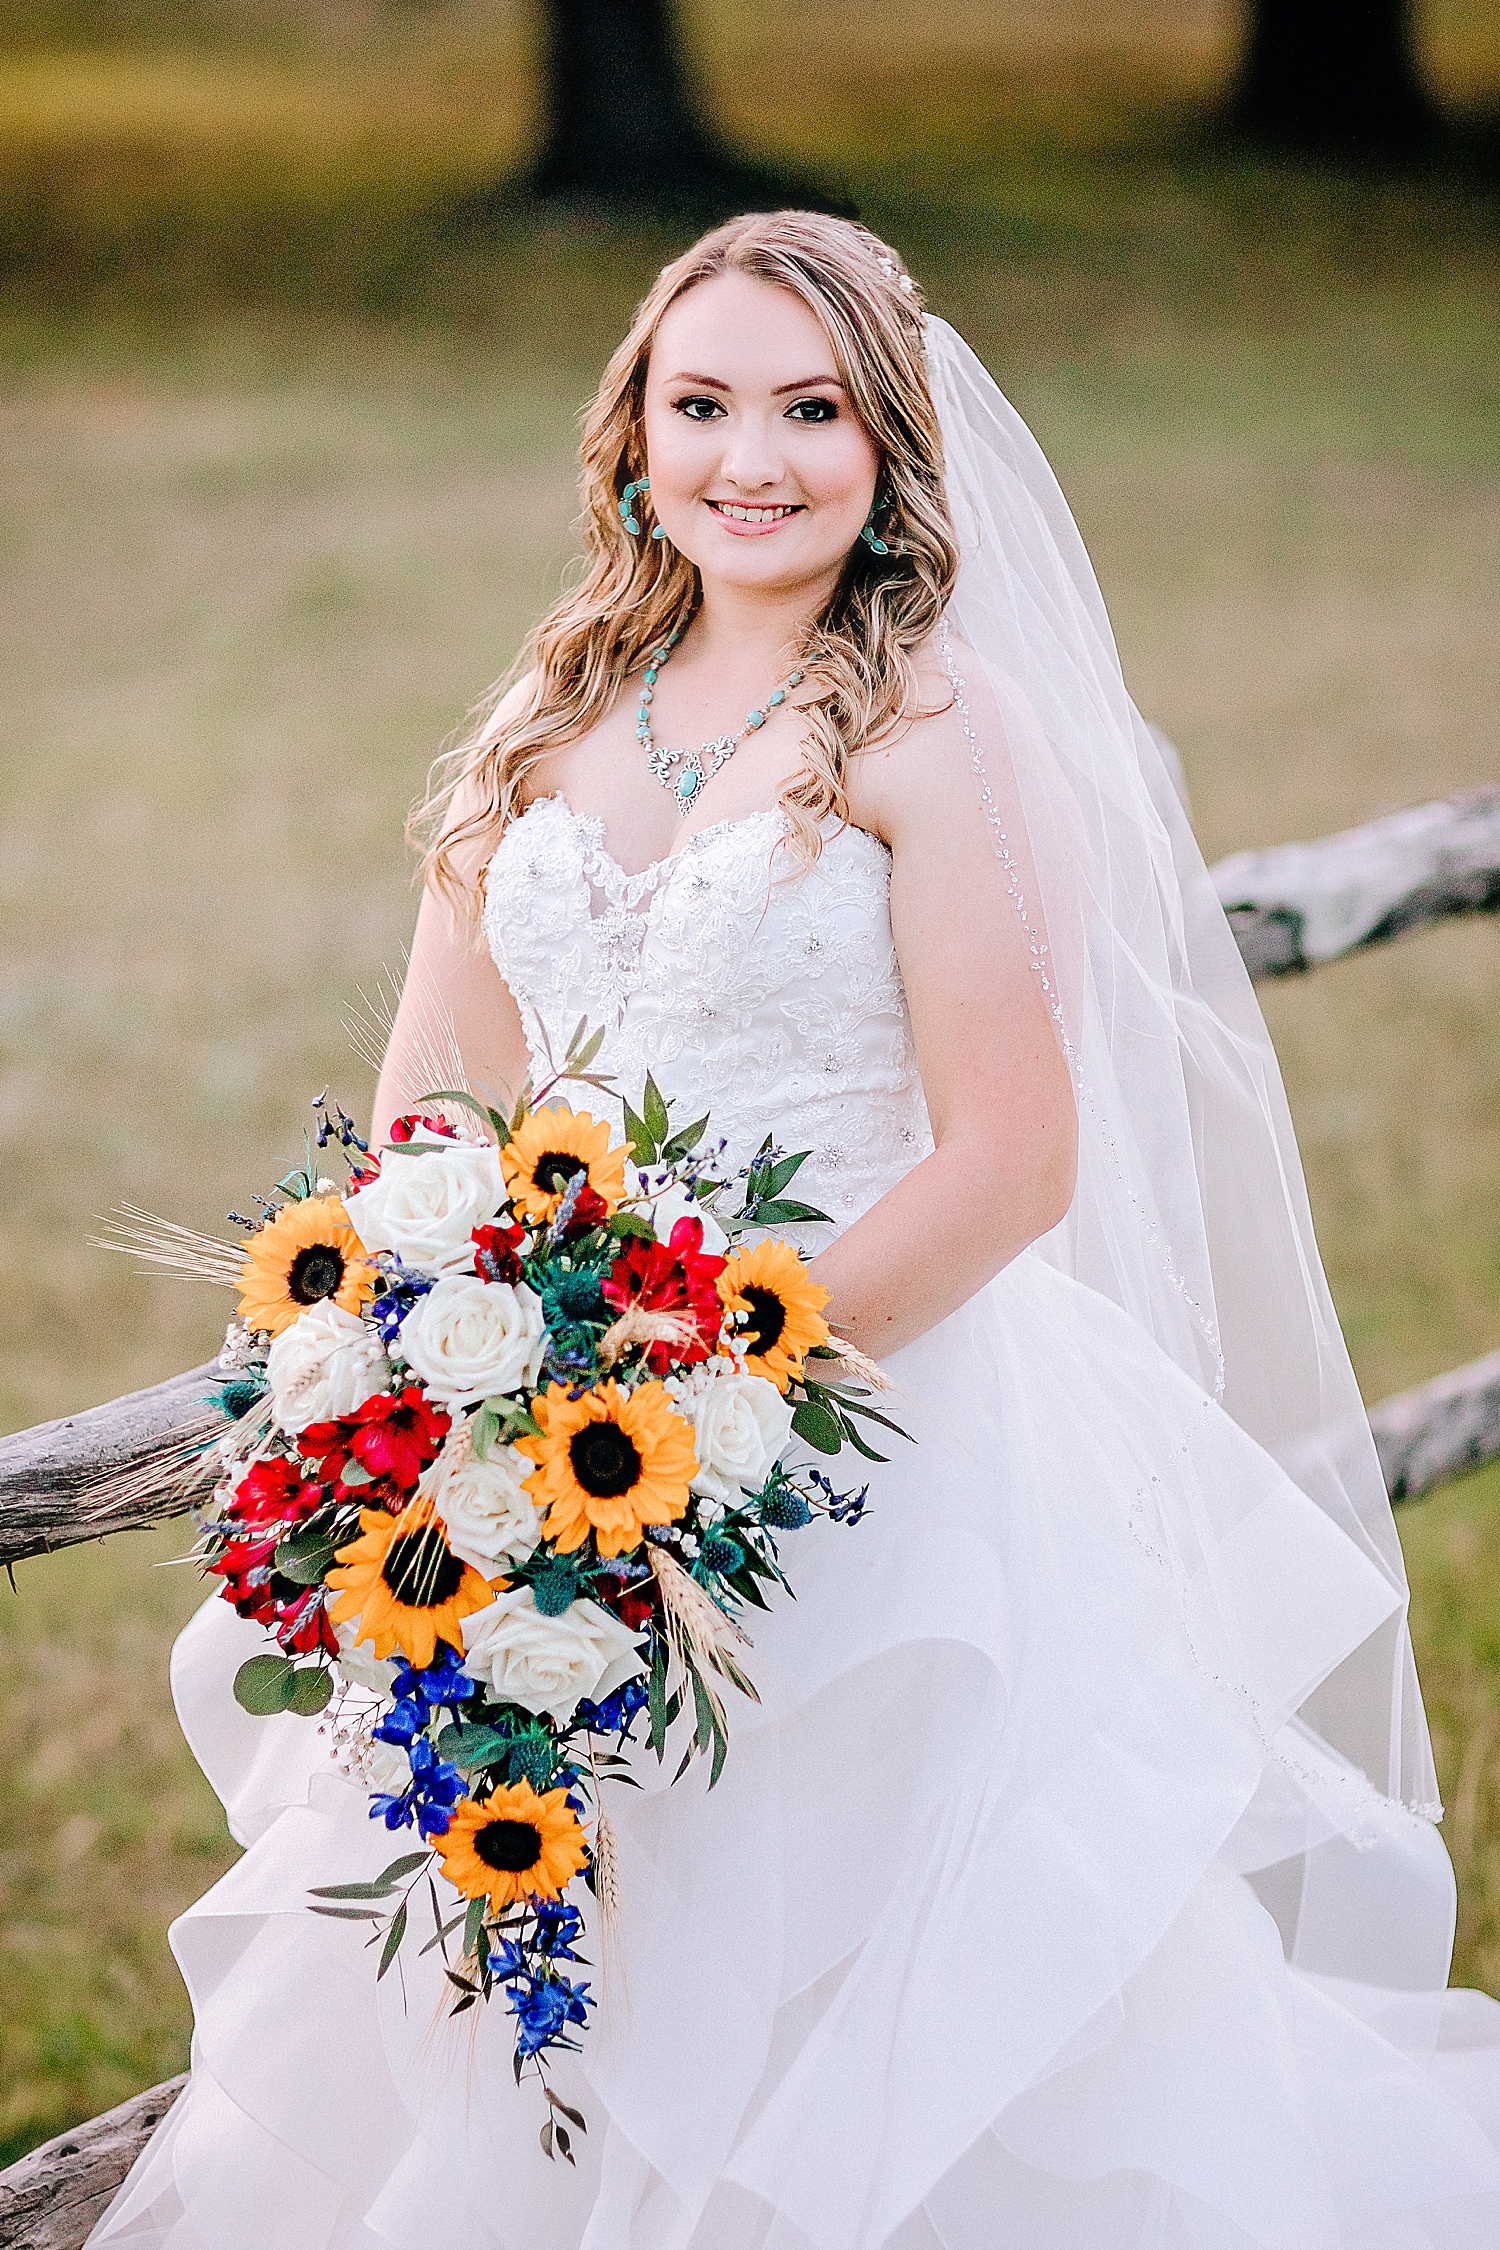 Carly-Barton-Photography-Texas-Bridals-Boerne-Rustic-Wedding-Photos_0022.jpg